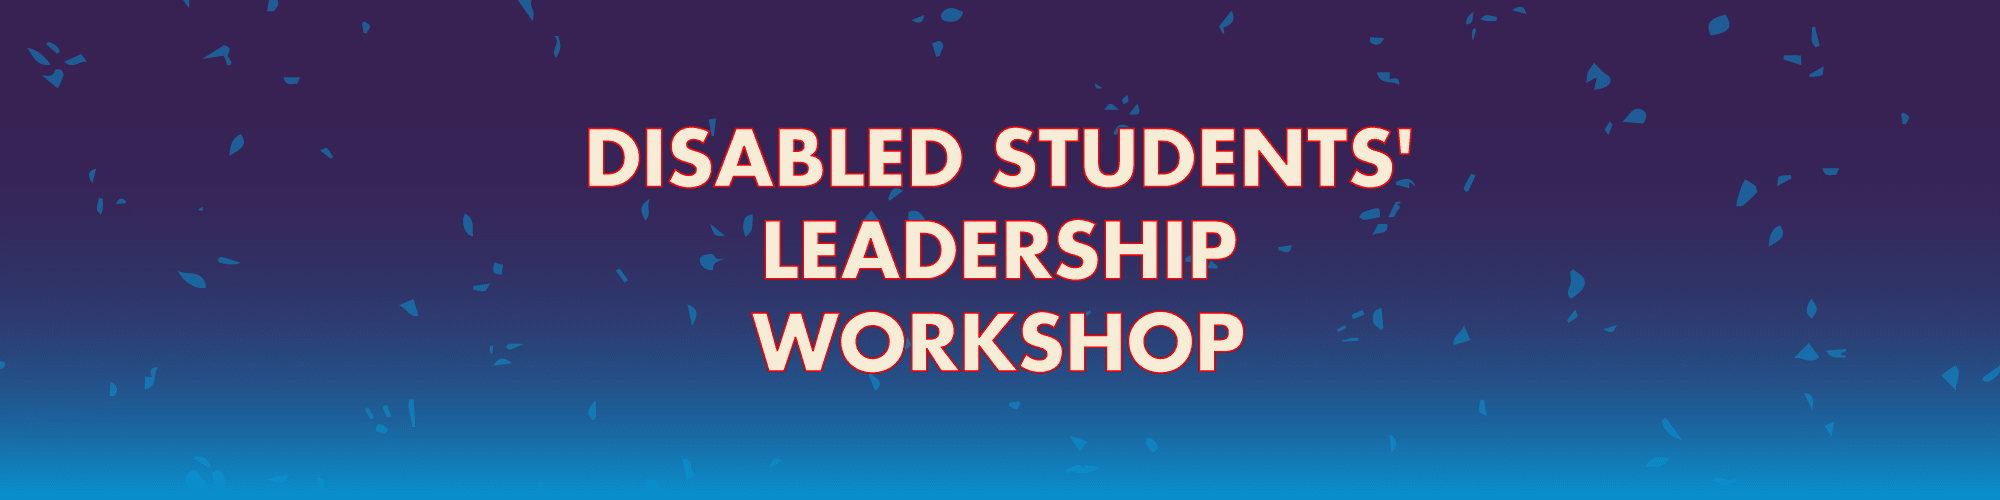 Disabled Students' Leadership Workshop